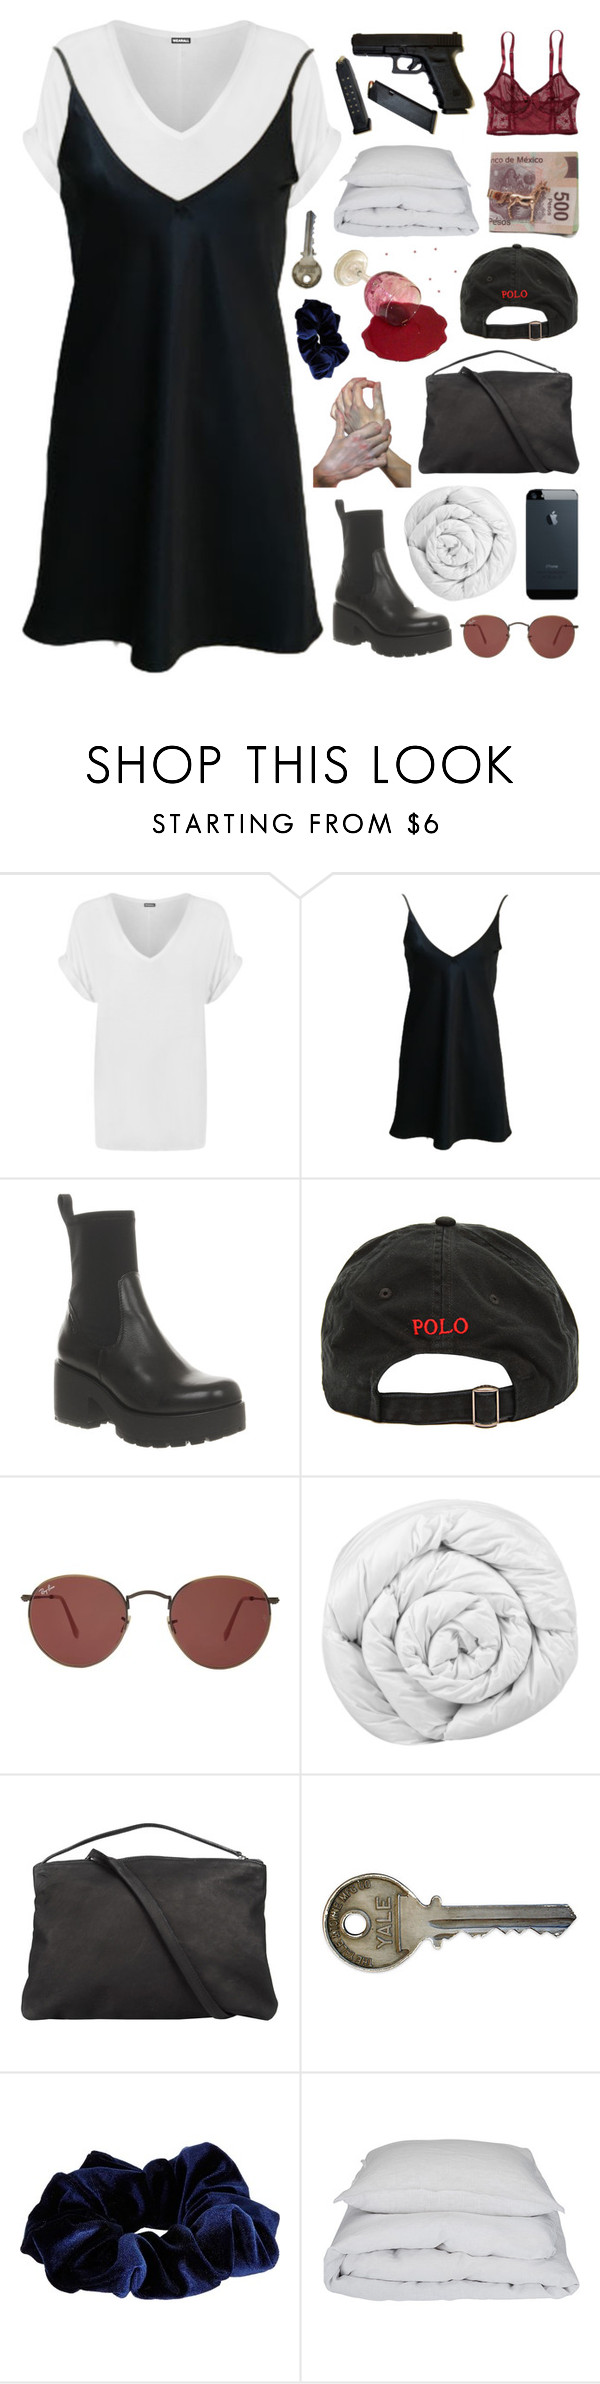 """""""it's me, the neediest person in the world™"""" by annamari-a ❤ liked on Polyvore featuring WearAll, Vagabond, Ralph Lauren, Ray-Ban, Brinkhaus, Ann Demeulemeester, River Island, By Nord, American Eagle Outfitters and TalisLittleTag"""